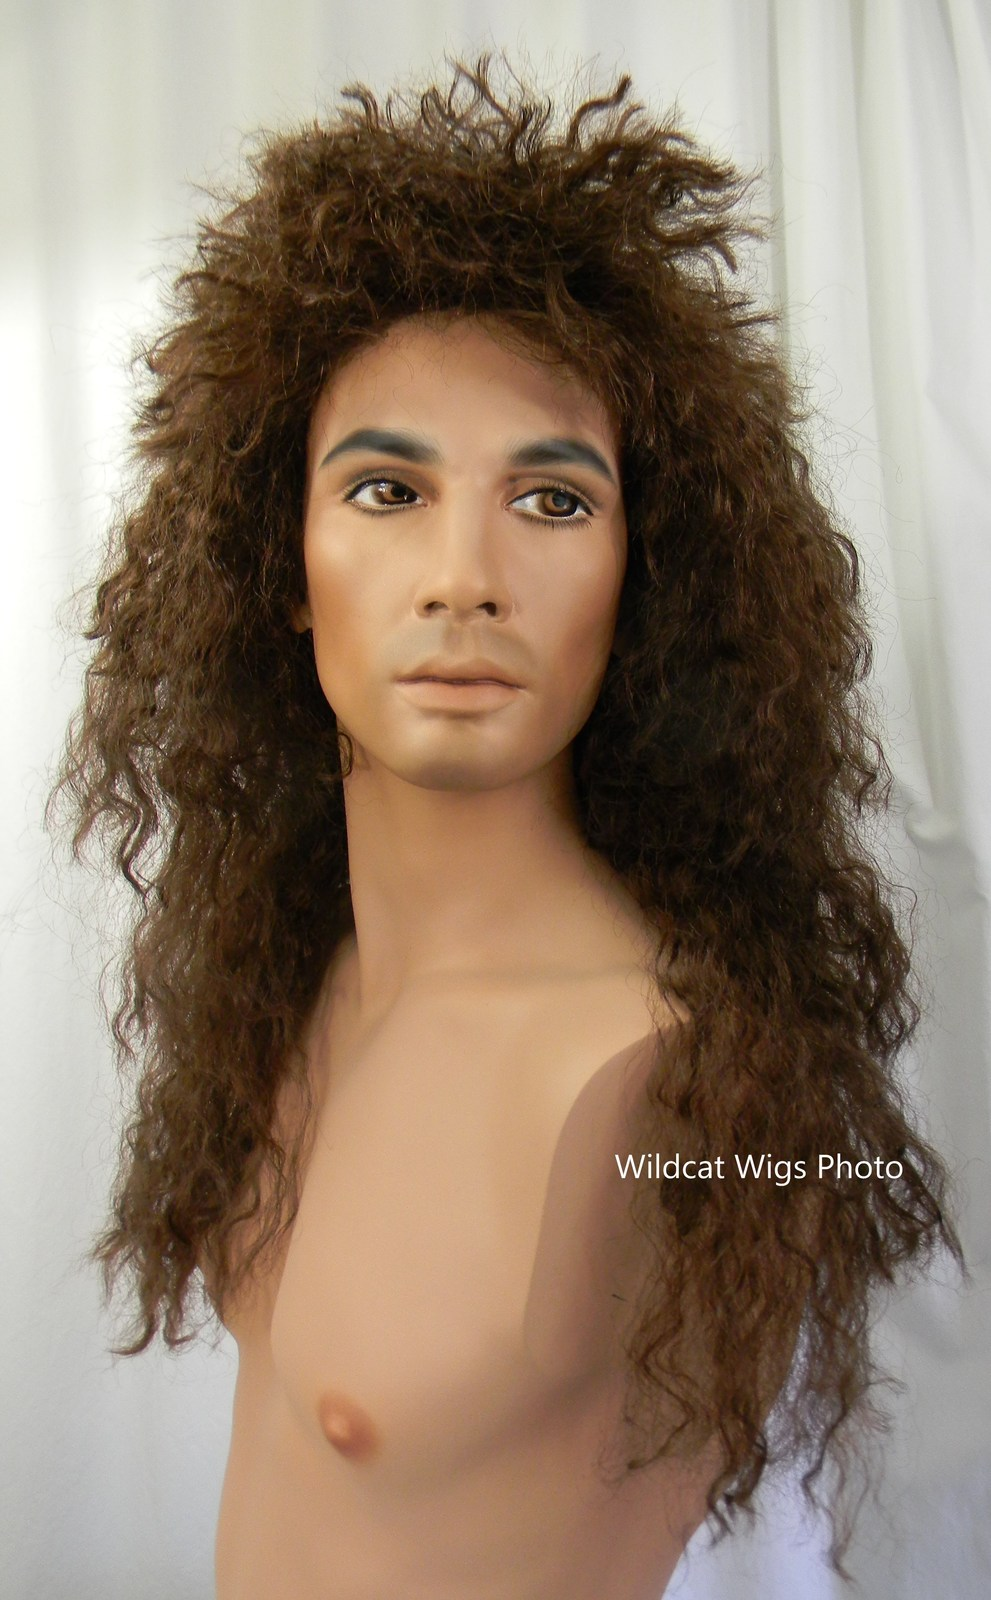 Heavy metal better costume wig unisex and 40 similar items heavy metal better costume wig unisex for men and women bon jovi publicscrutiny Image collections